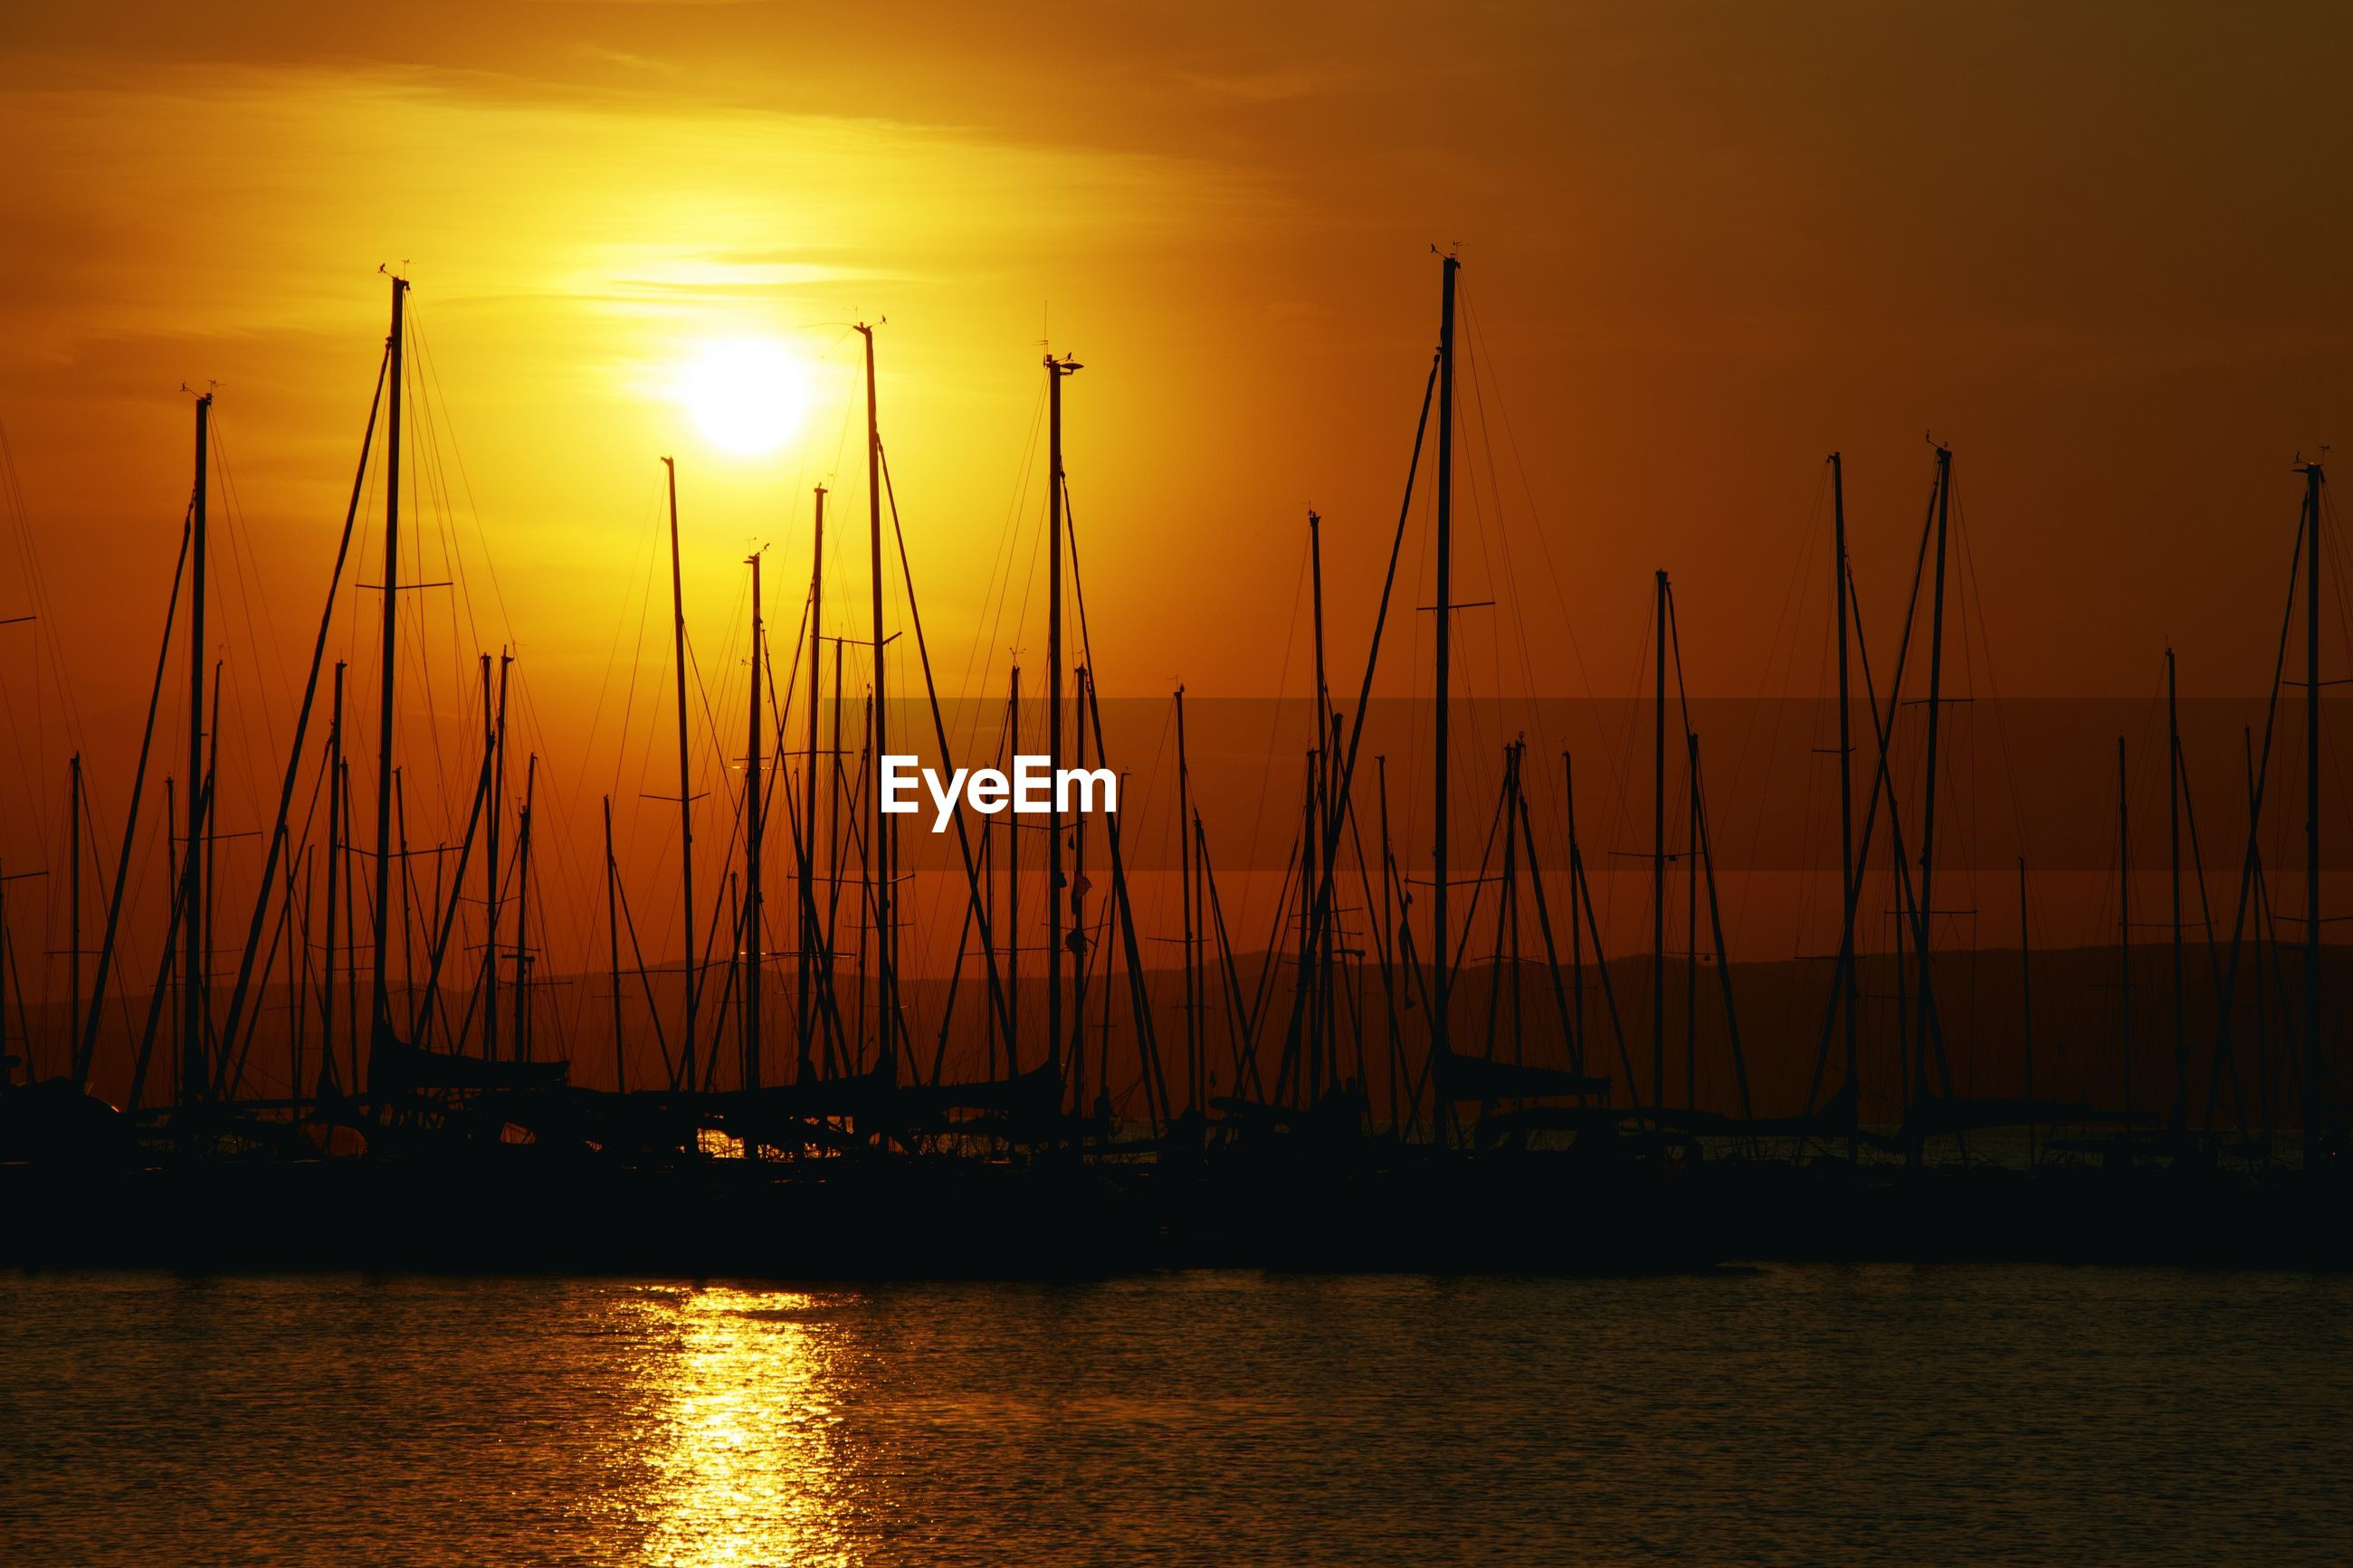 SAILBOATS ON SEA AGAINST ORANGE SKY